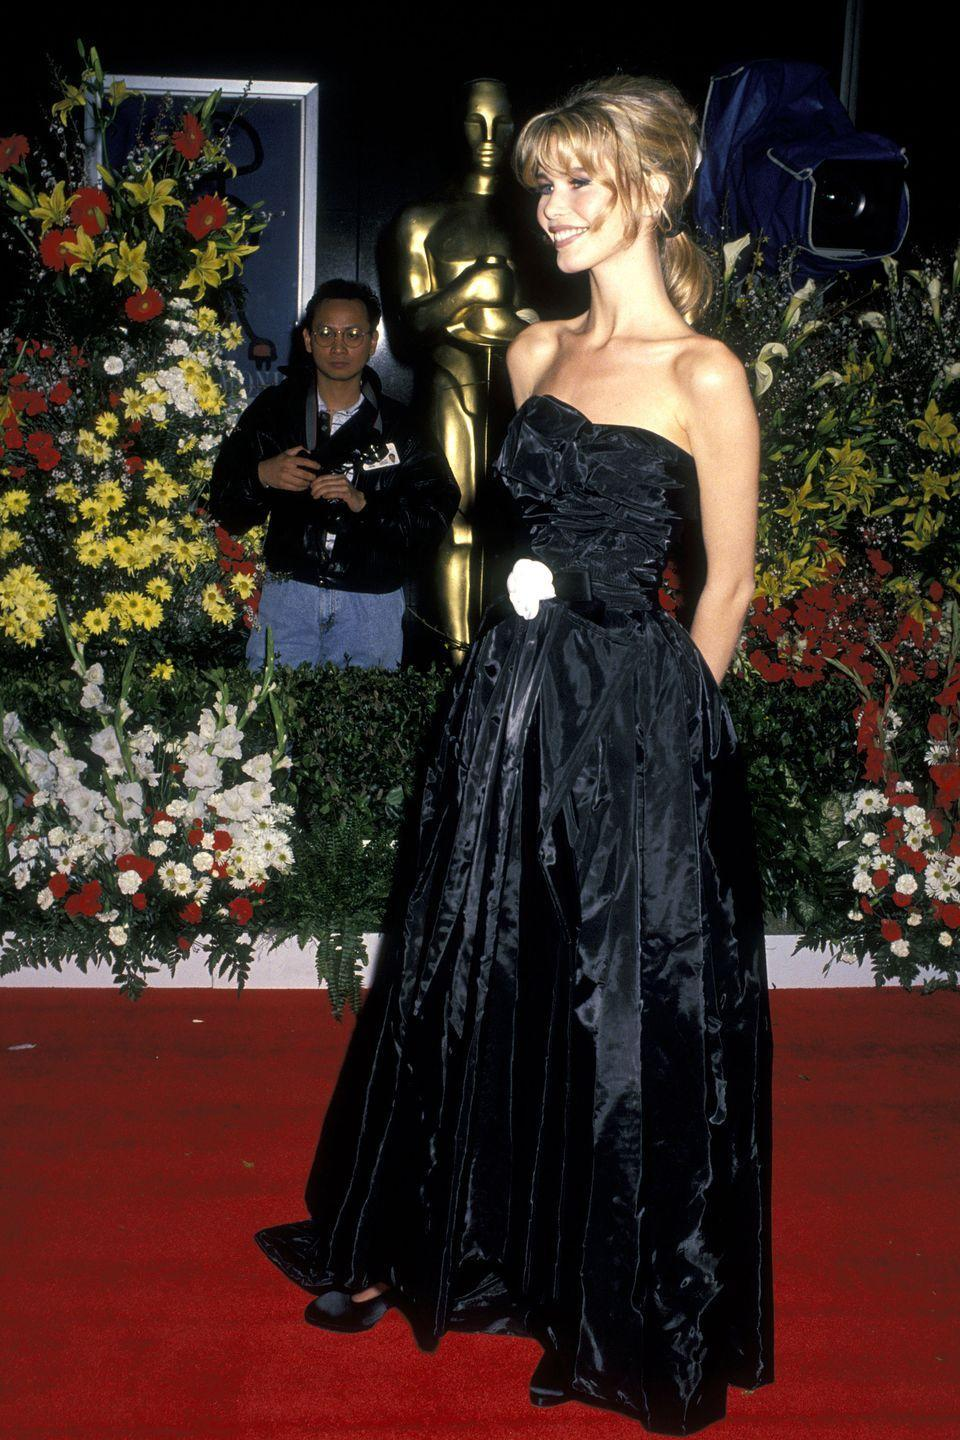 <p>This is at the Oscars and is an incredible full-length Chanel gown which was made out of an umbrella fabric! I still have it in my archive wardrobe.</p>